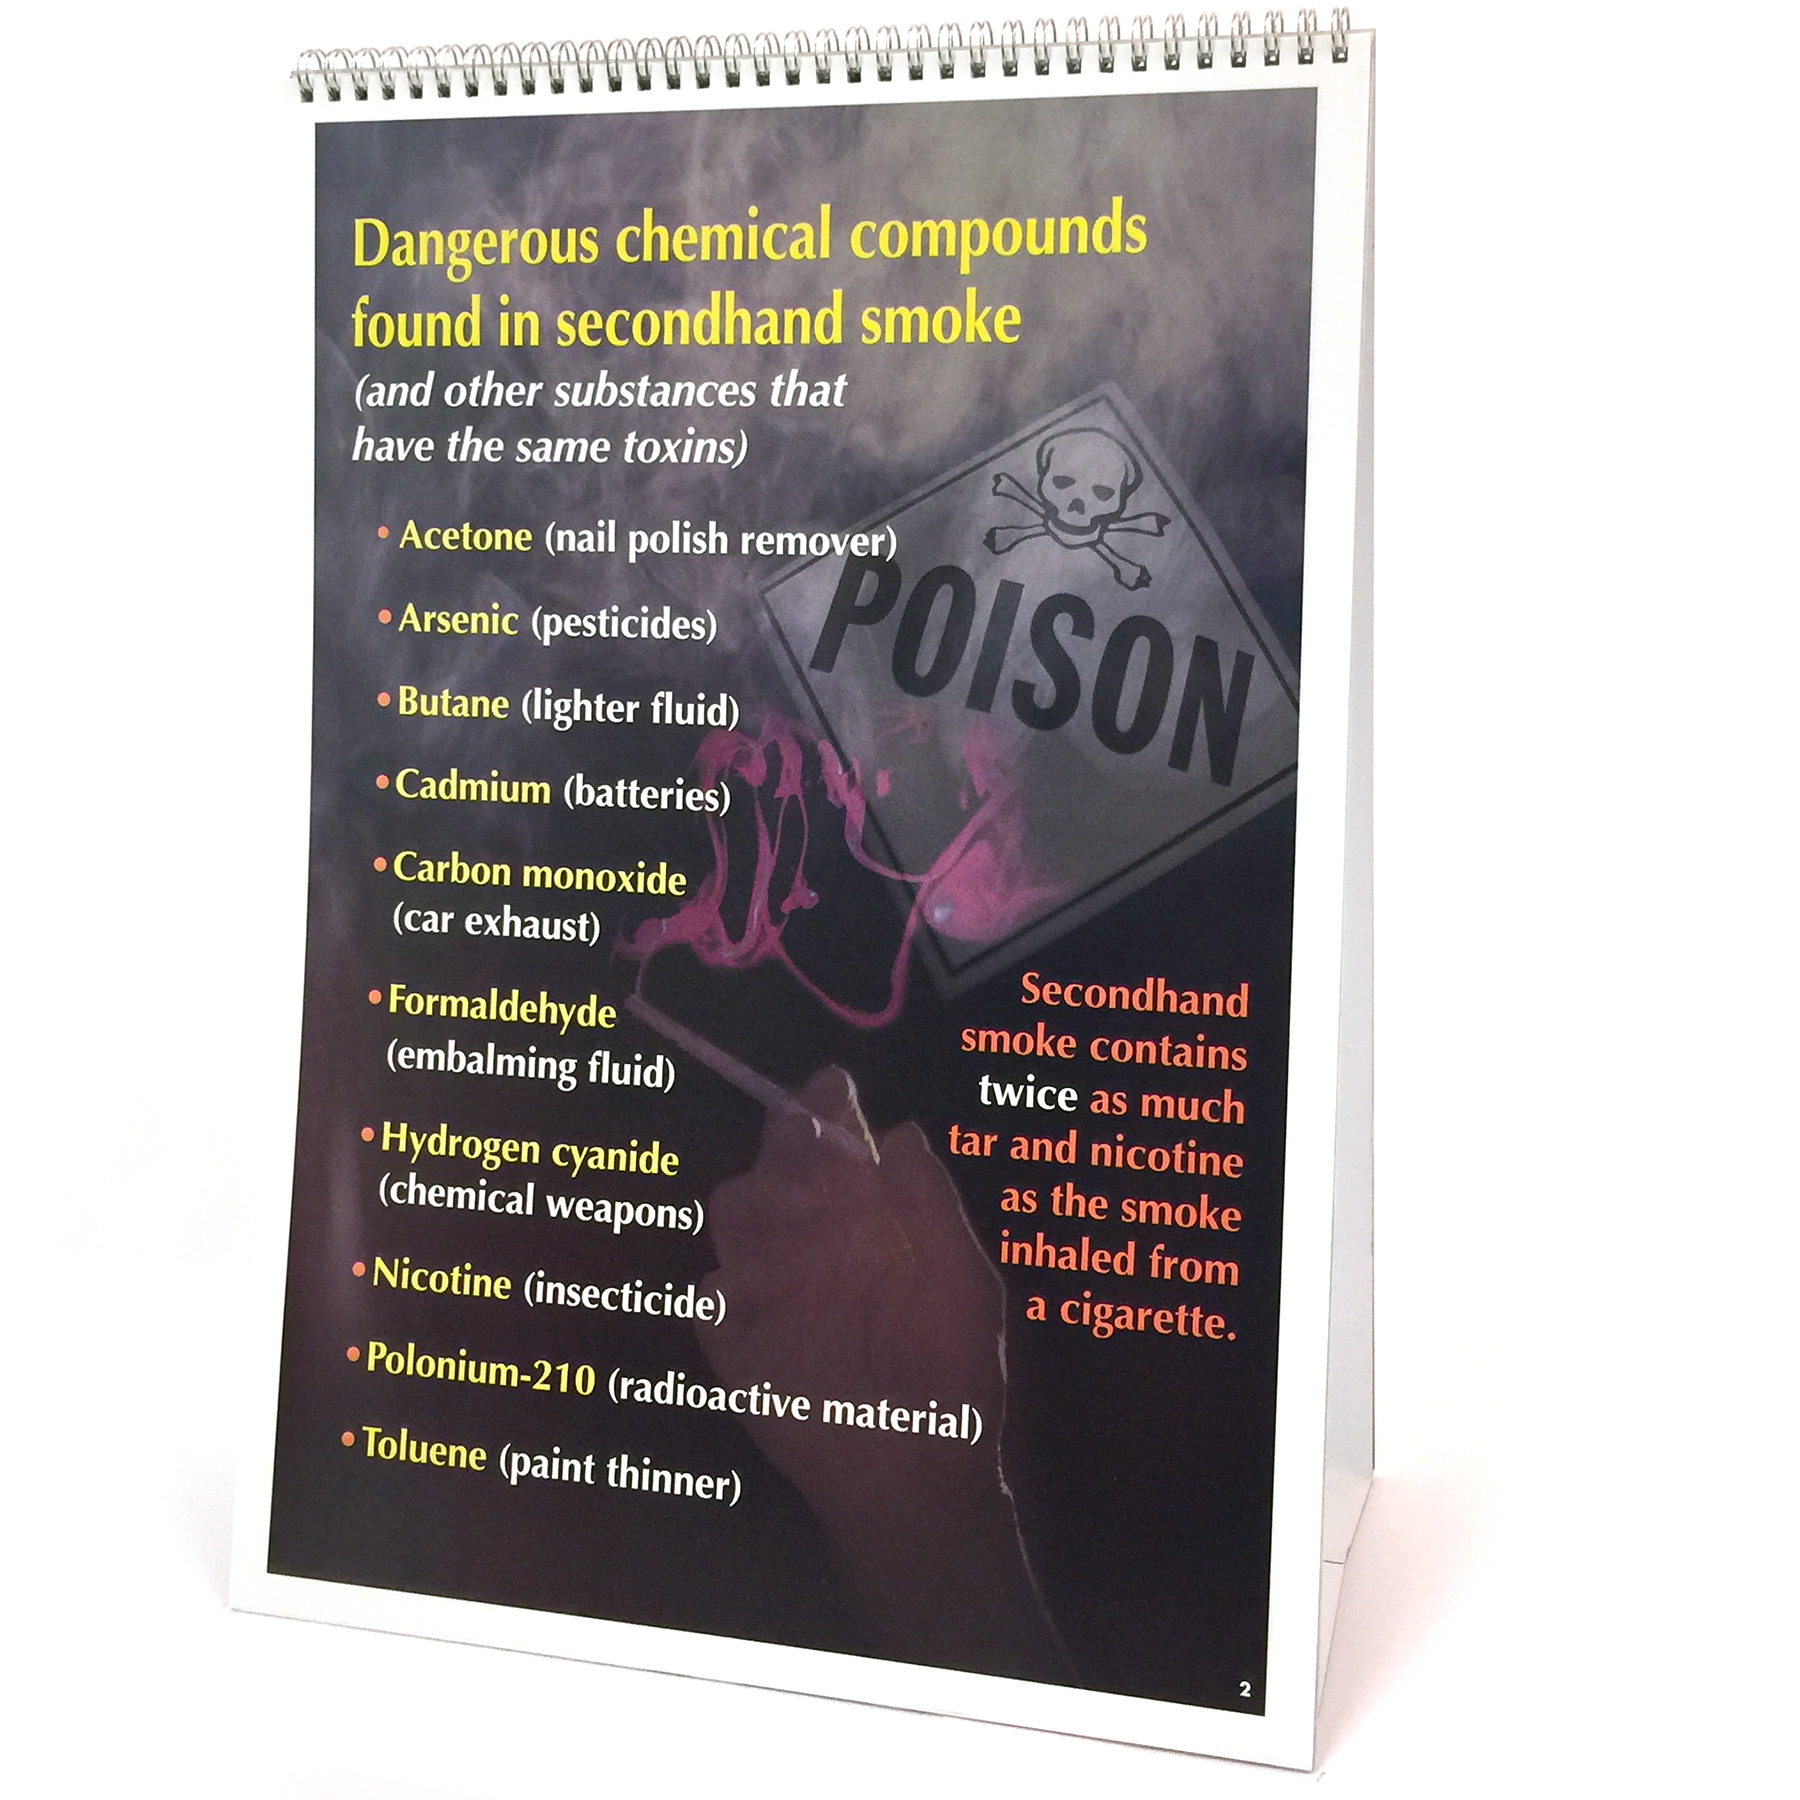 Secondhand Smoke 6-panel spiral bound flip chart panel 2 teaching notes, dangerous chemical compounds explained, Health Edco, 43110